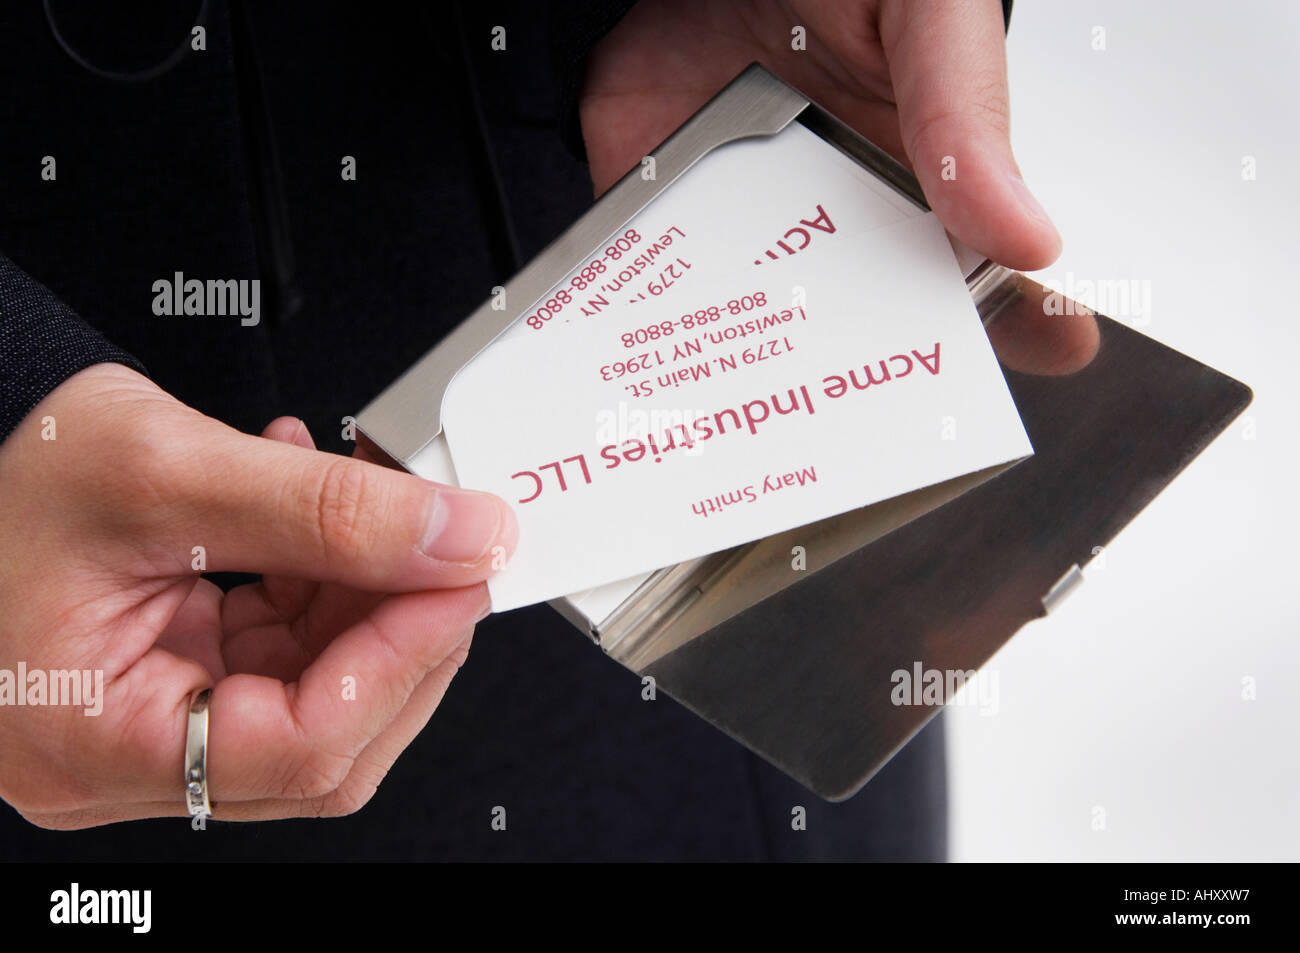 Handing out business cards stock photos handing out business cards businesswoman handing out business cards stock image colourmoves